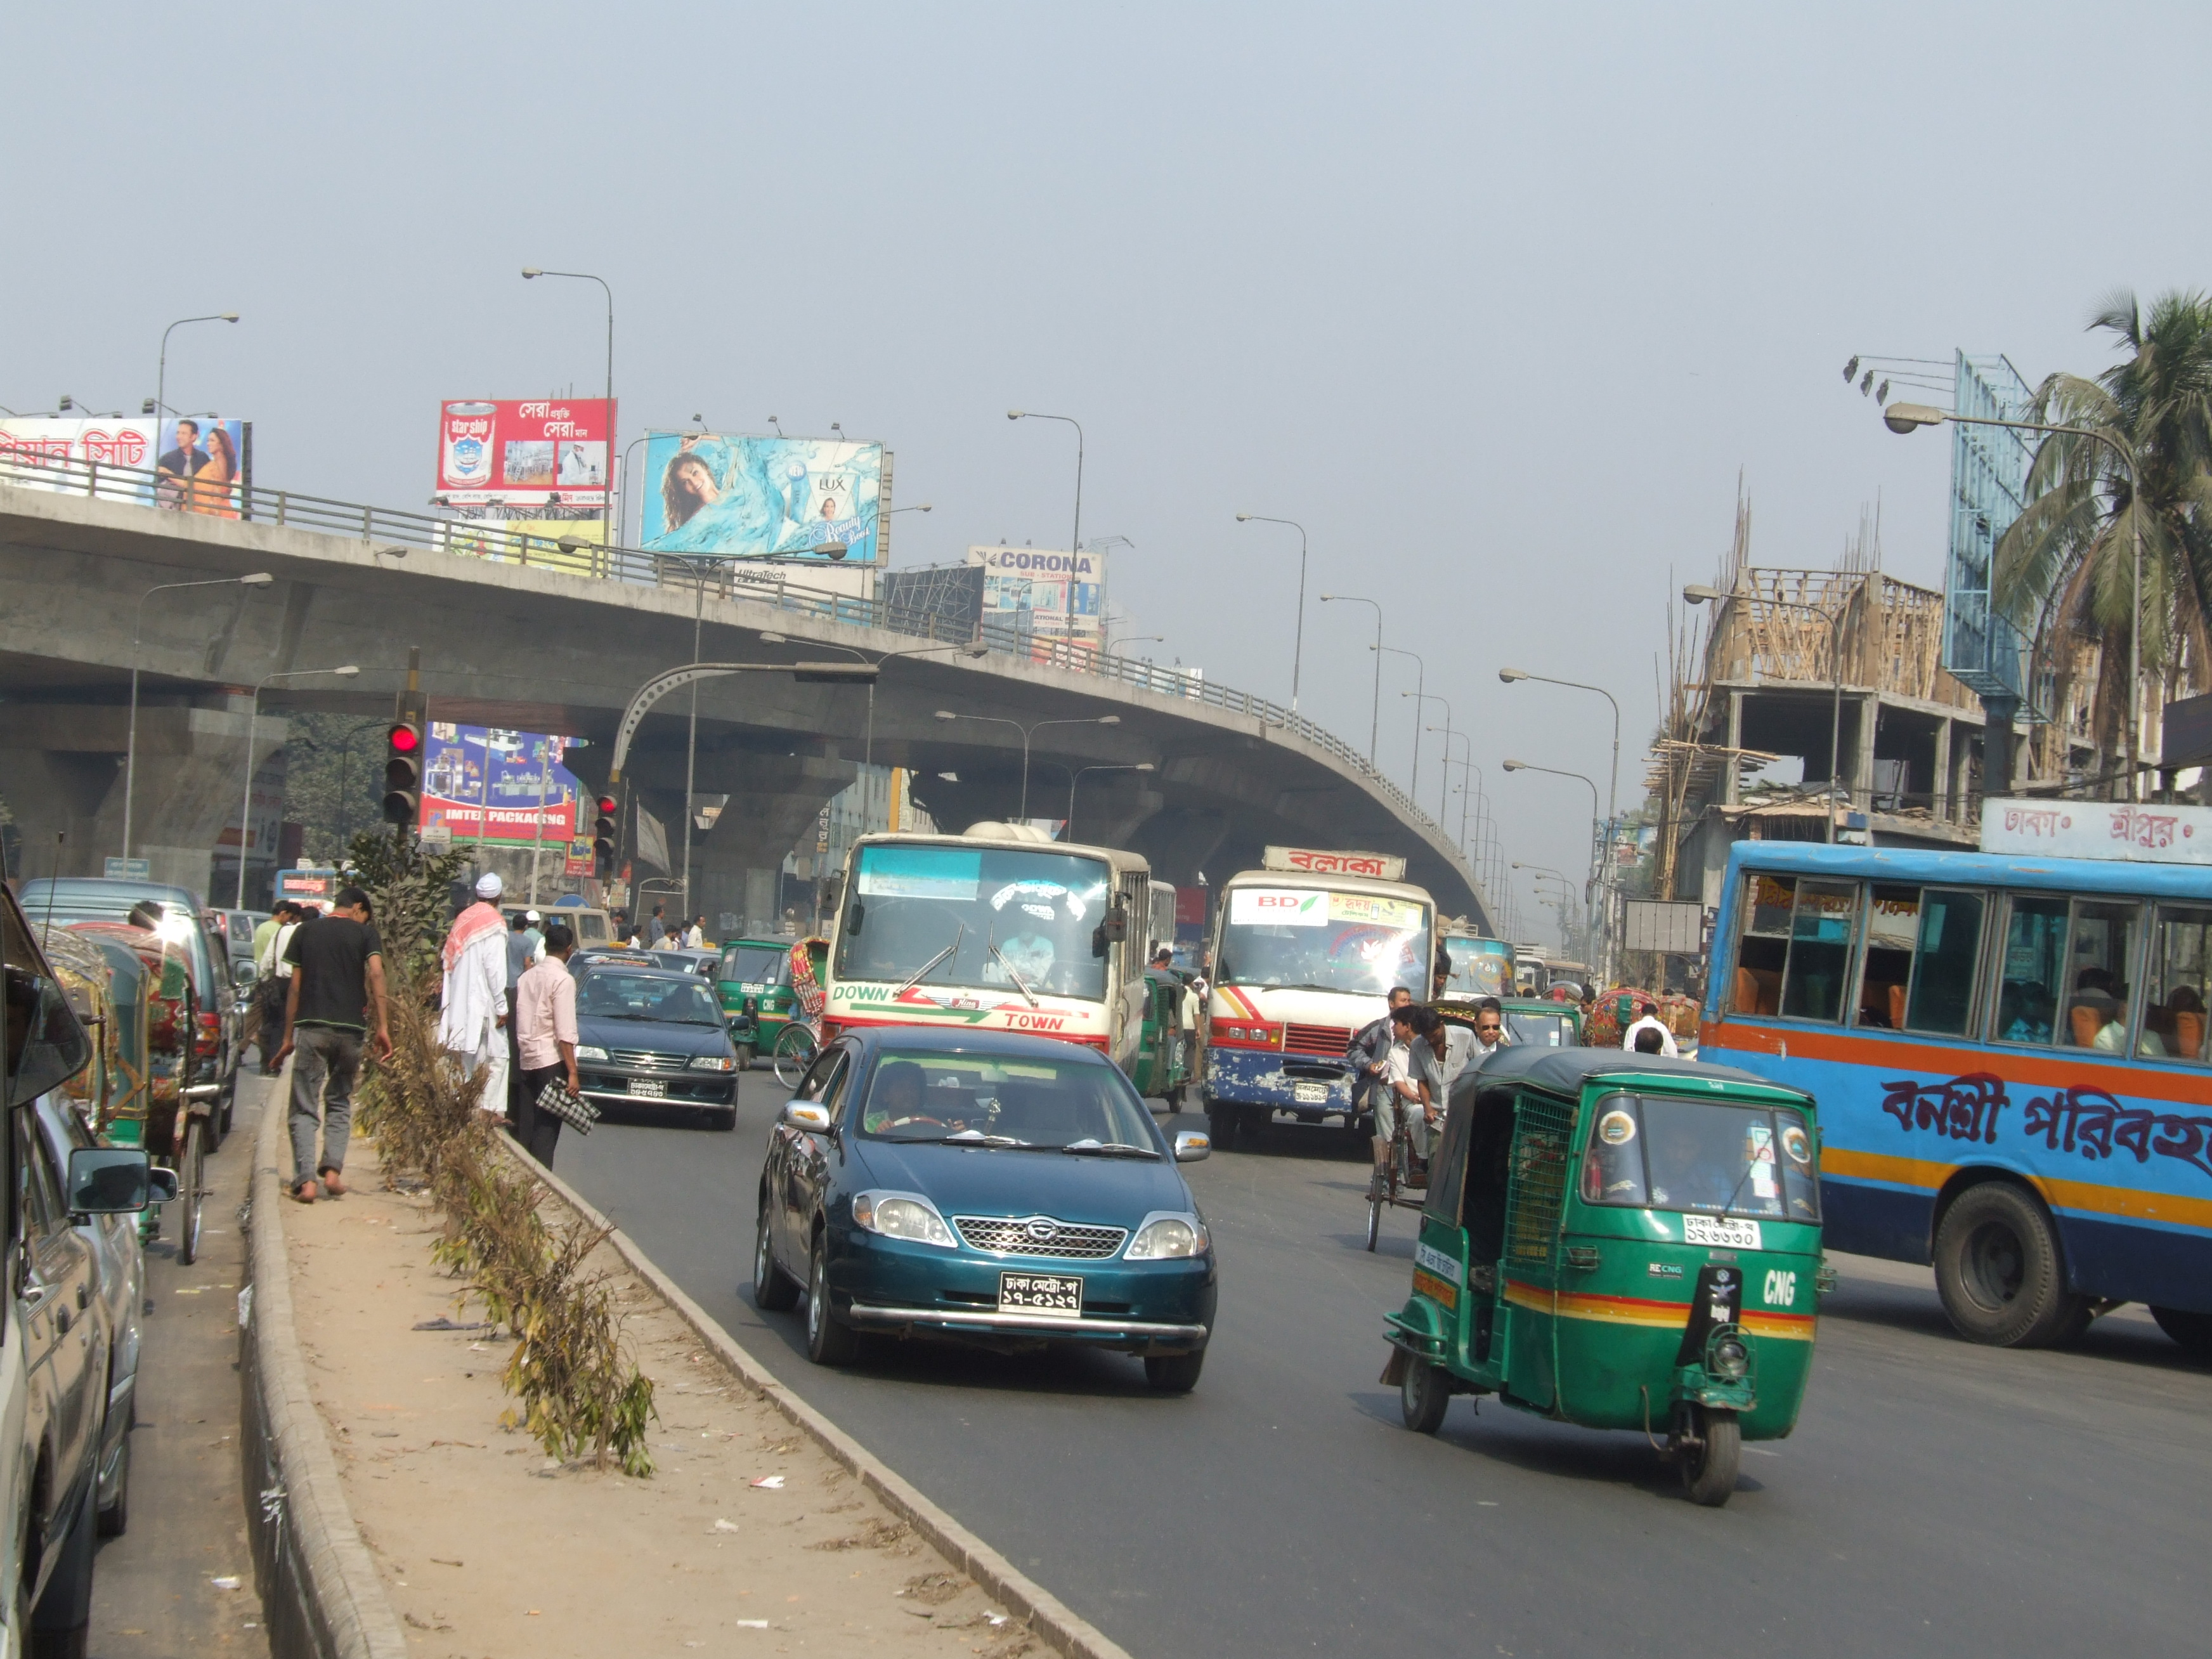 Dhaka Flyover Pictures Mohakhali Flyover in Dhaka